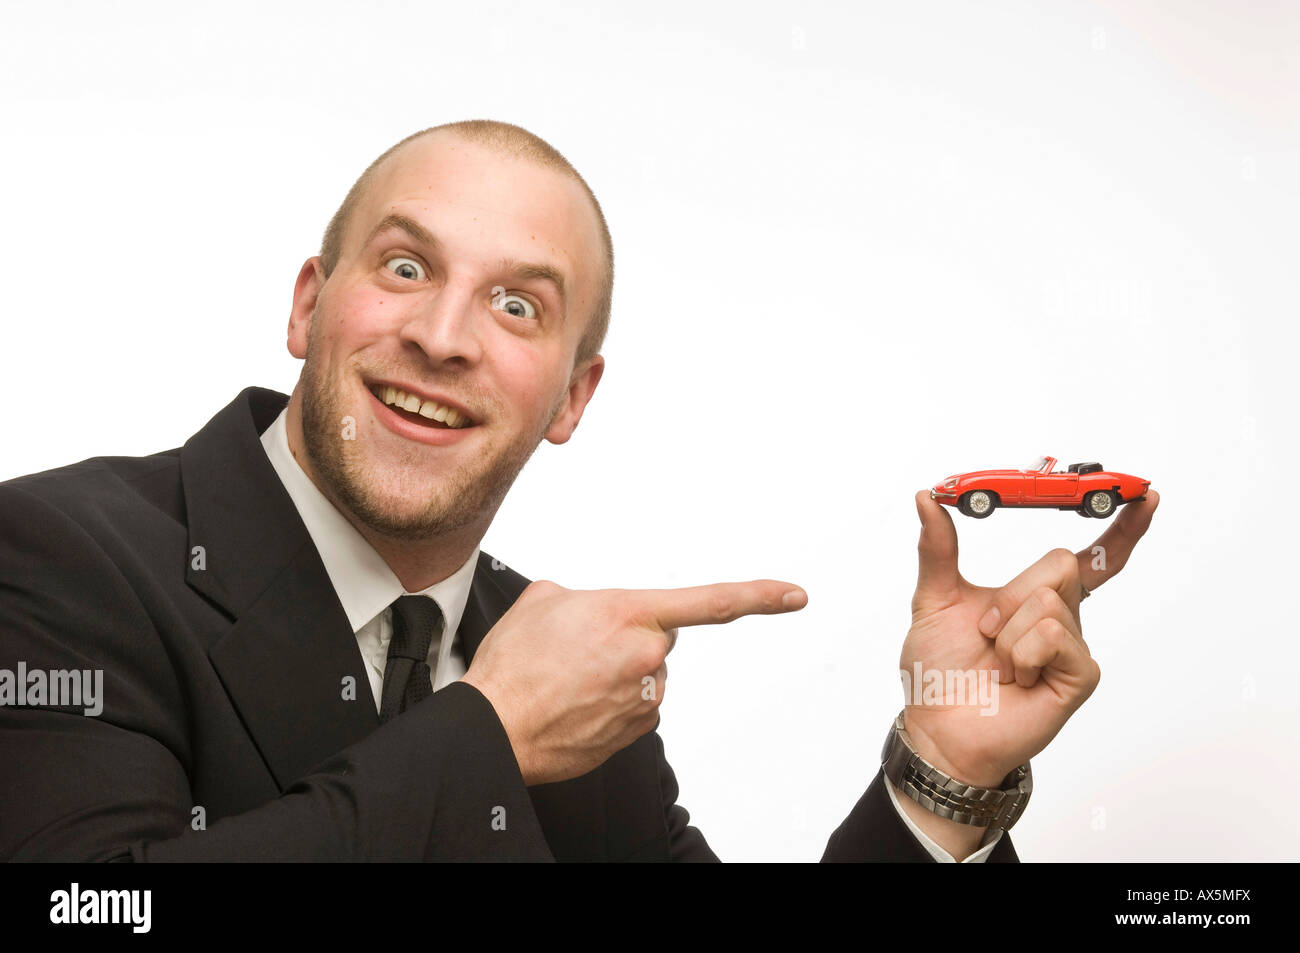 Young man holding model car Stock Photo